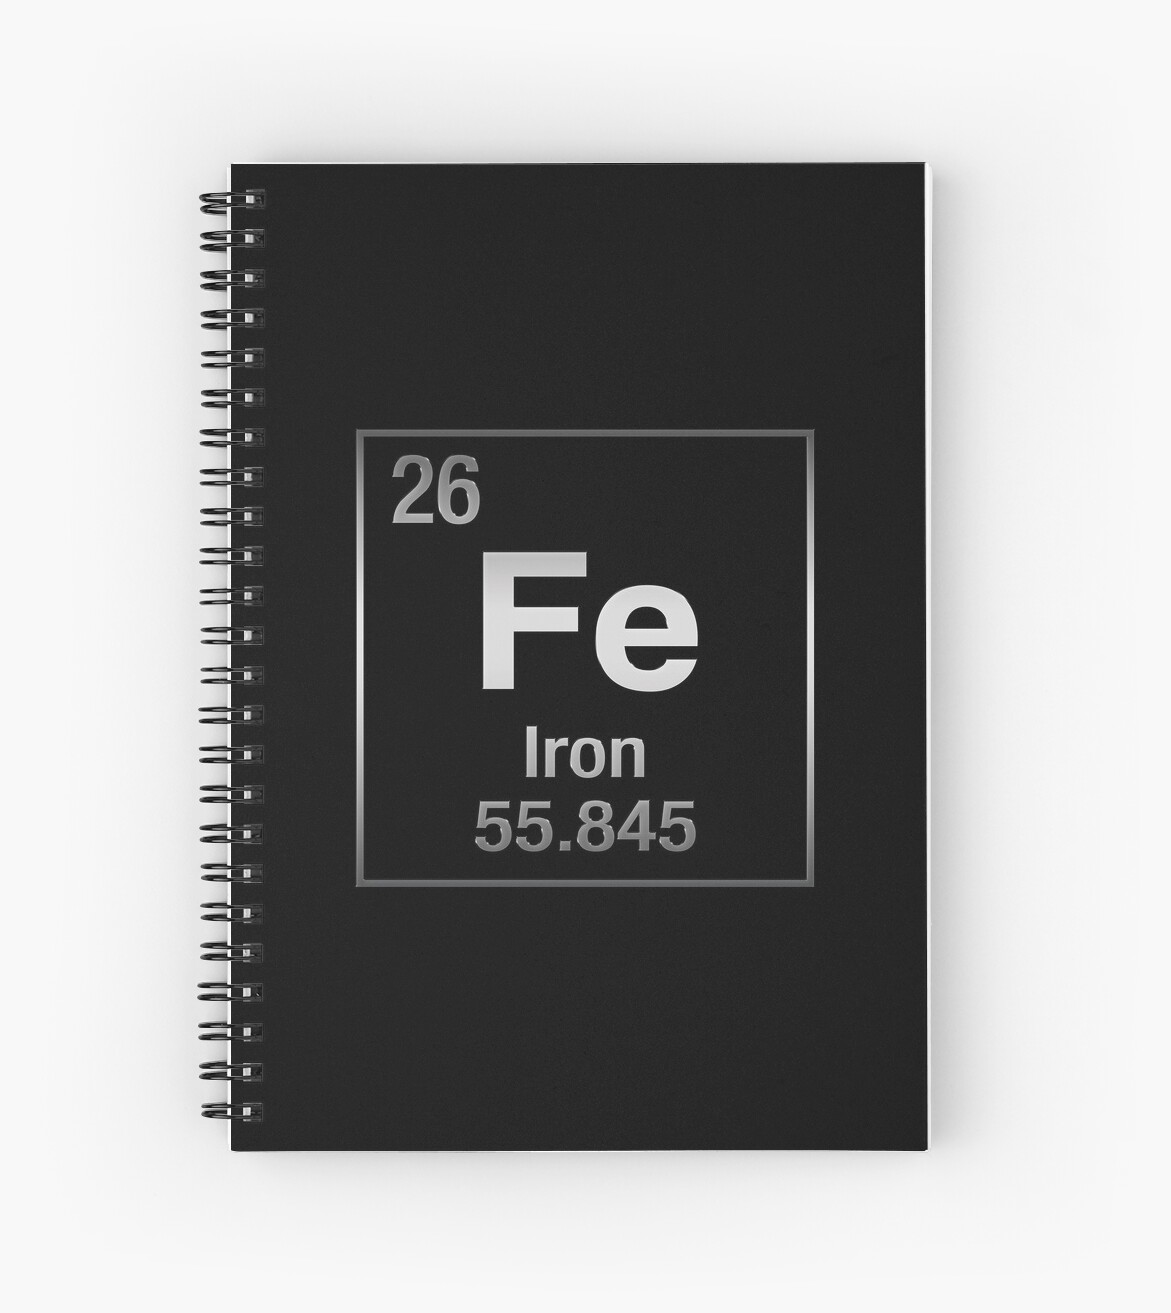 Periodic Table of Elements - Iron (Fe) on Black Canvas by Serge Averbukh